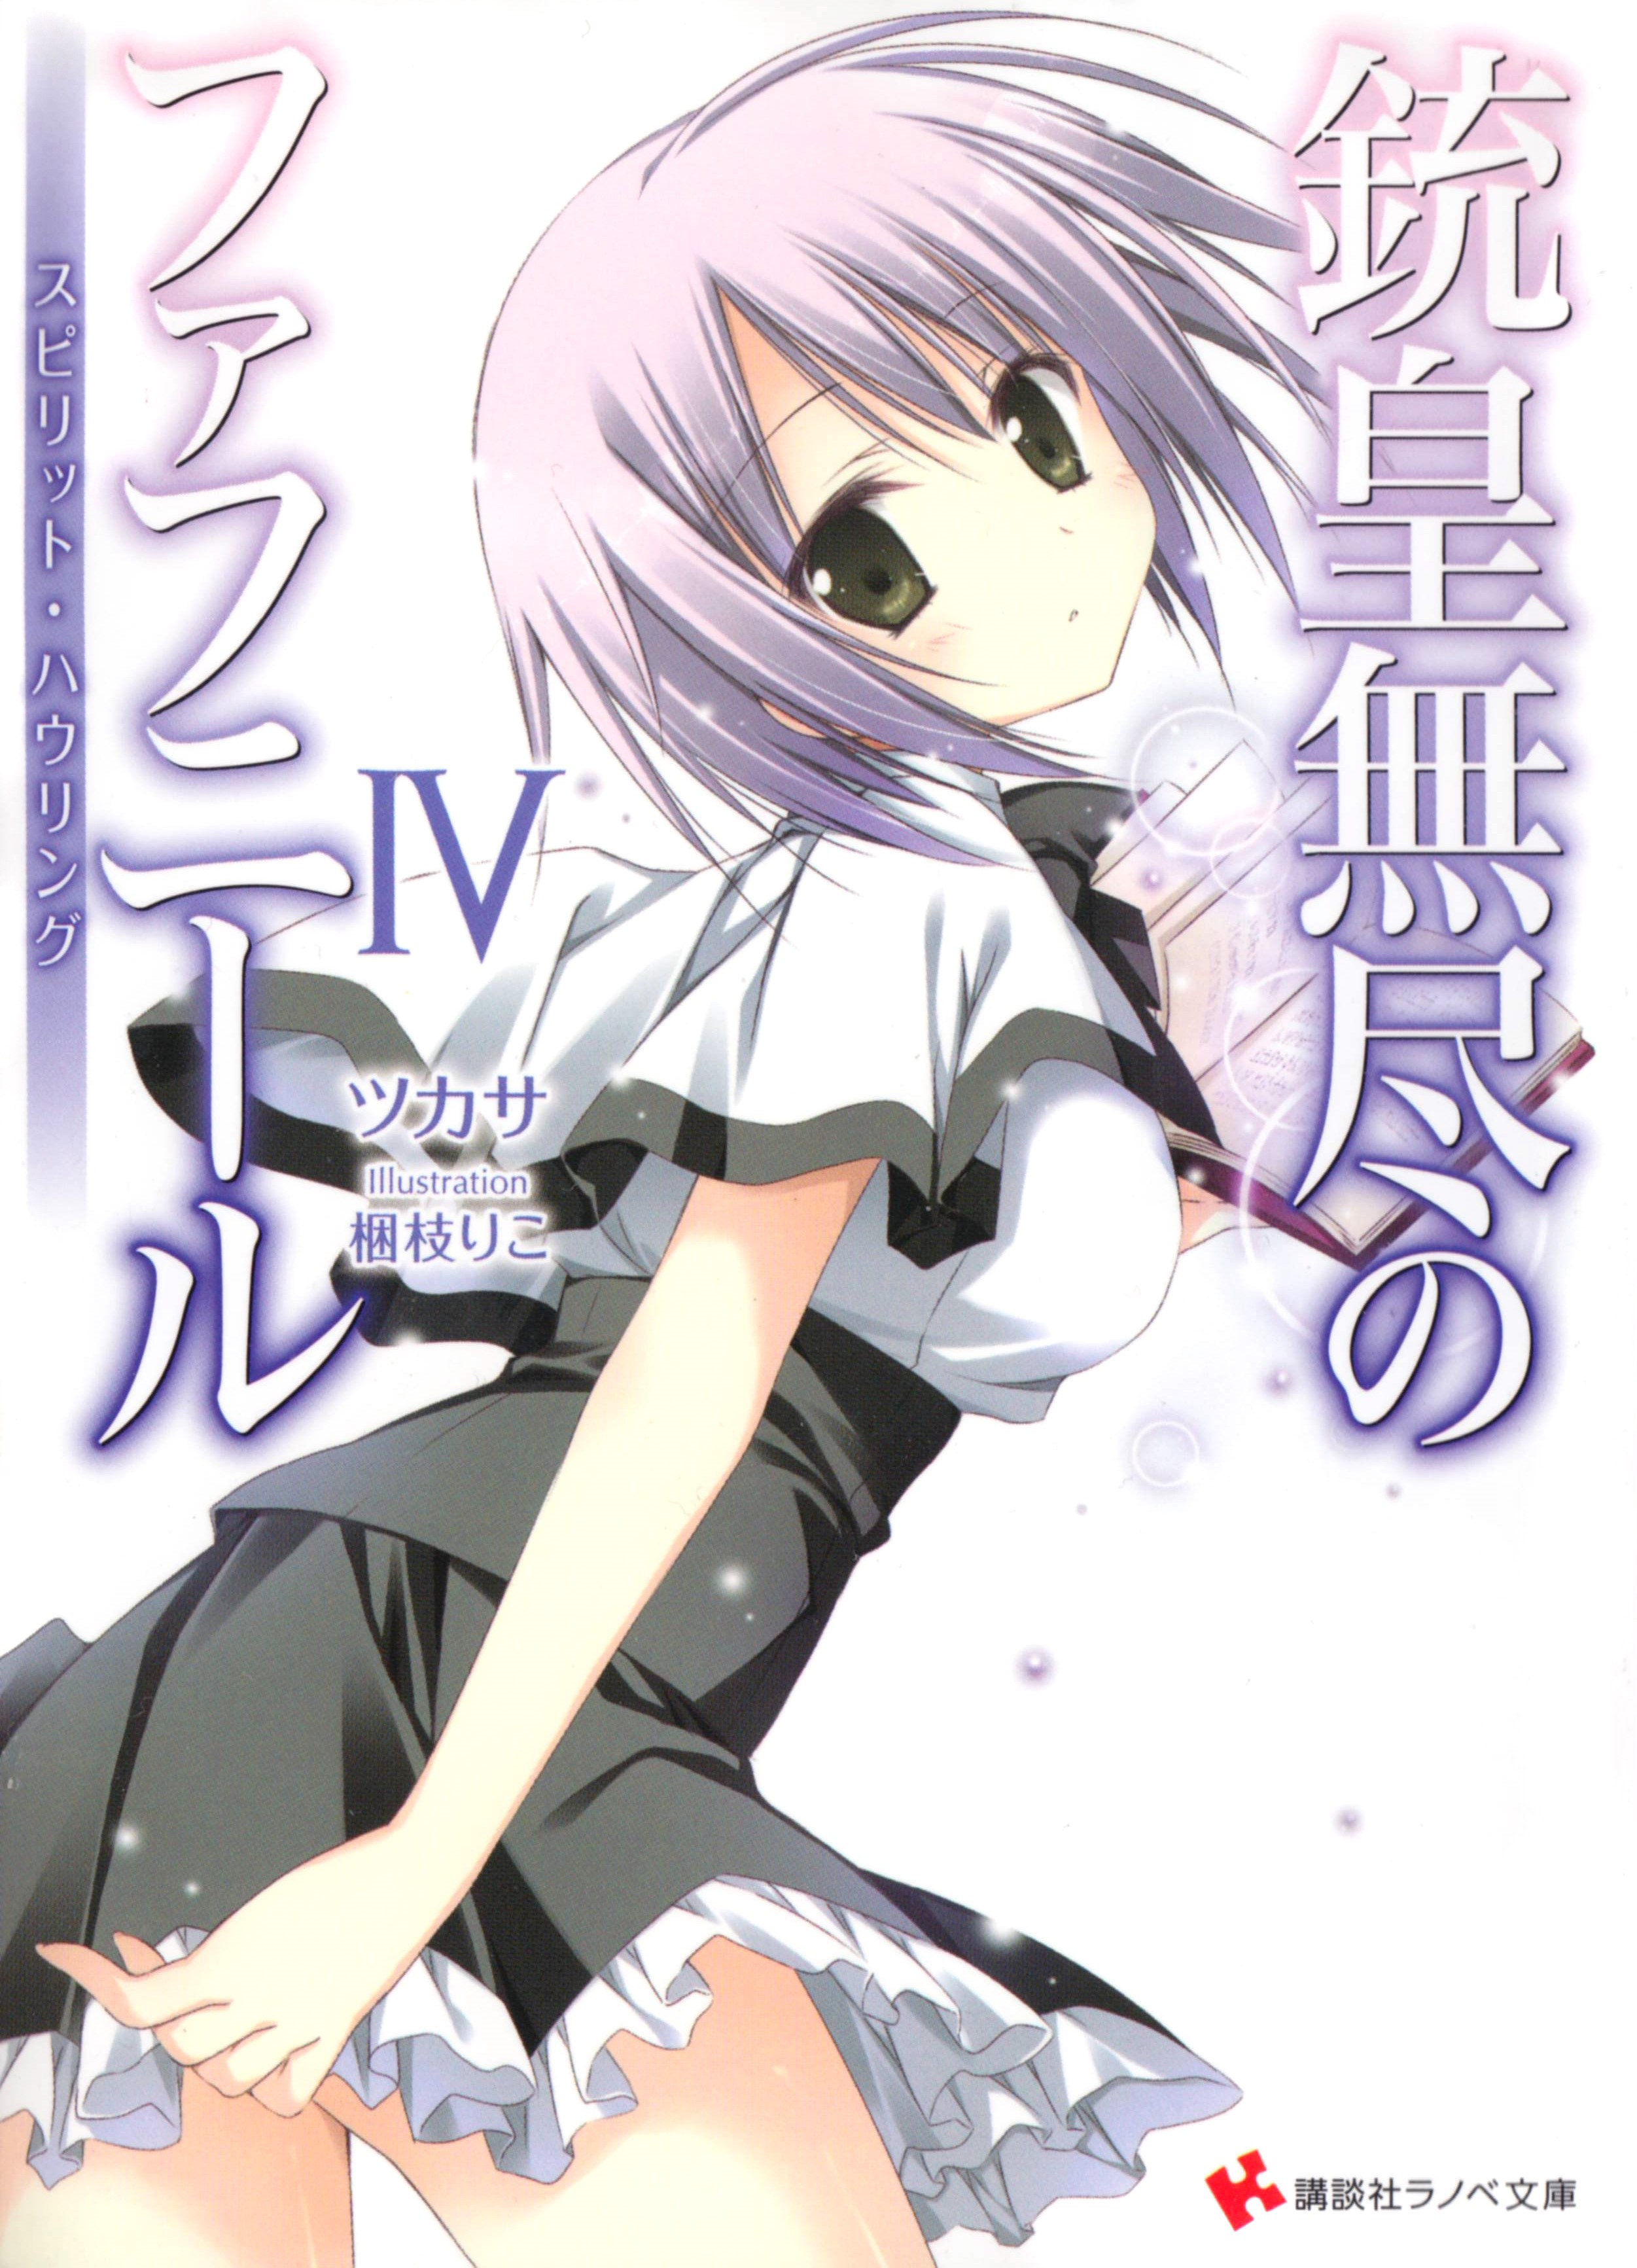 Cover of Unlimited Fafnir Volume 4, featuring Firill Crest